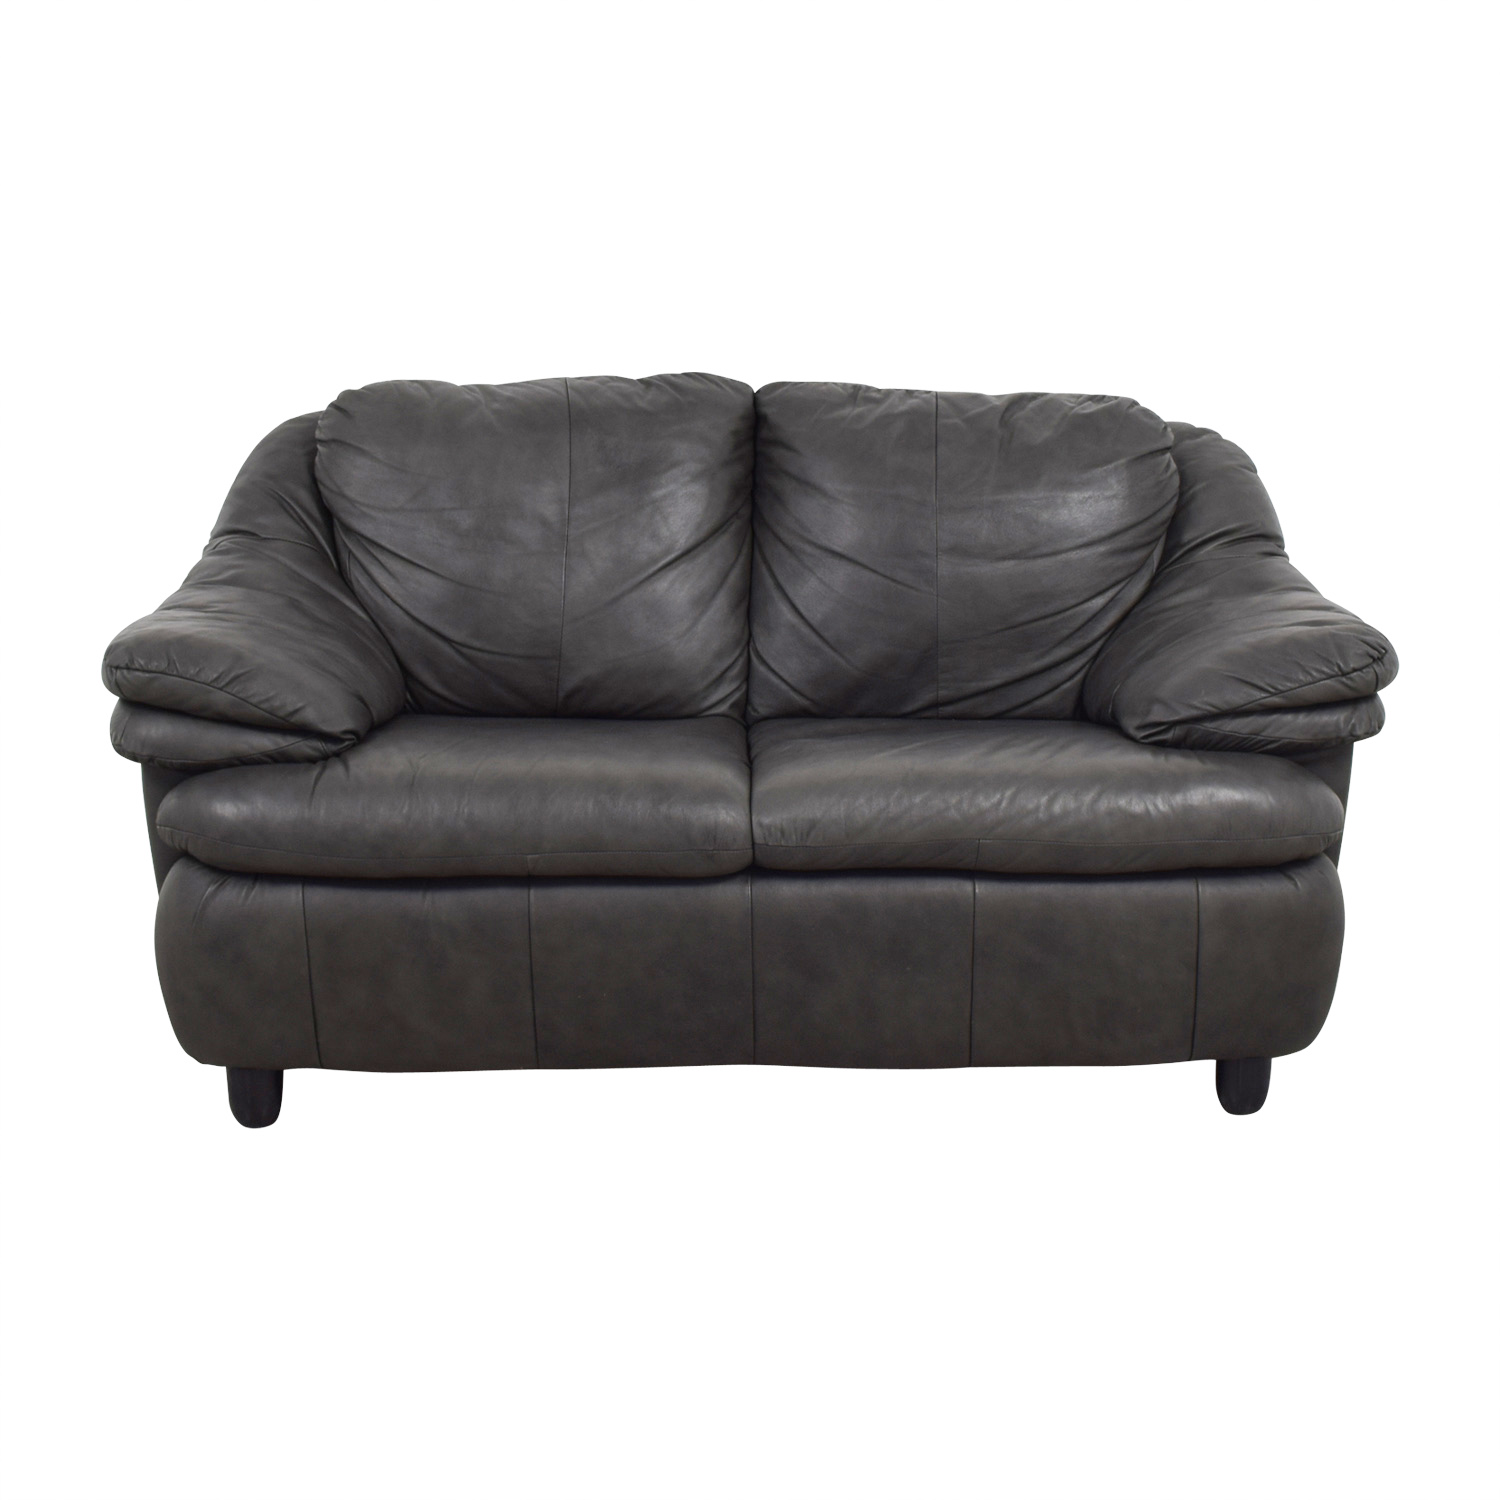 Jennifer Leather Jennifer Leather Natale Grey Love Seat Grey